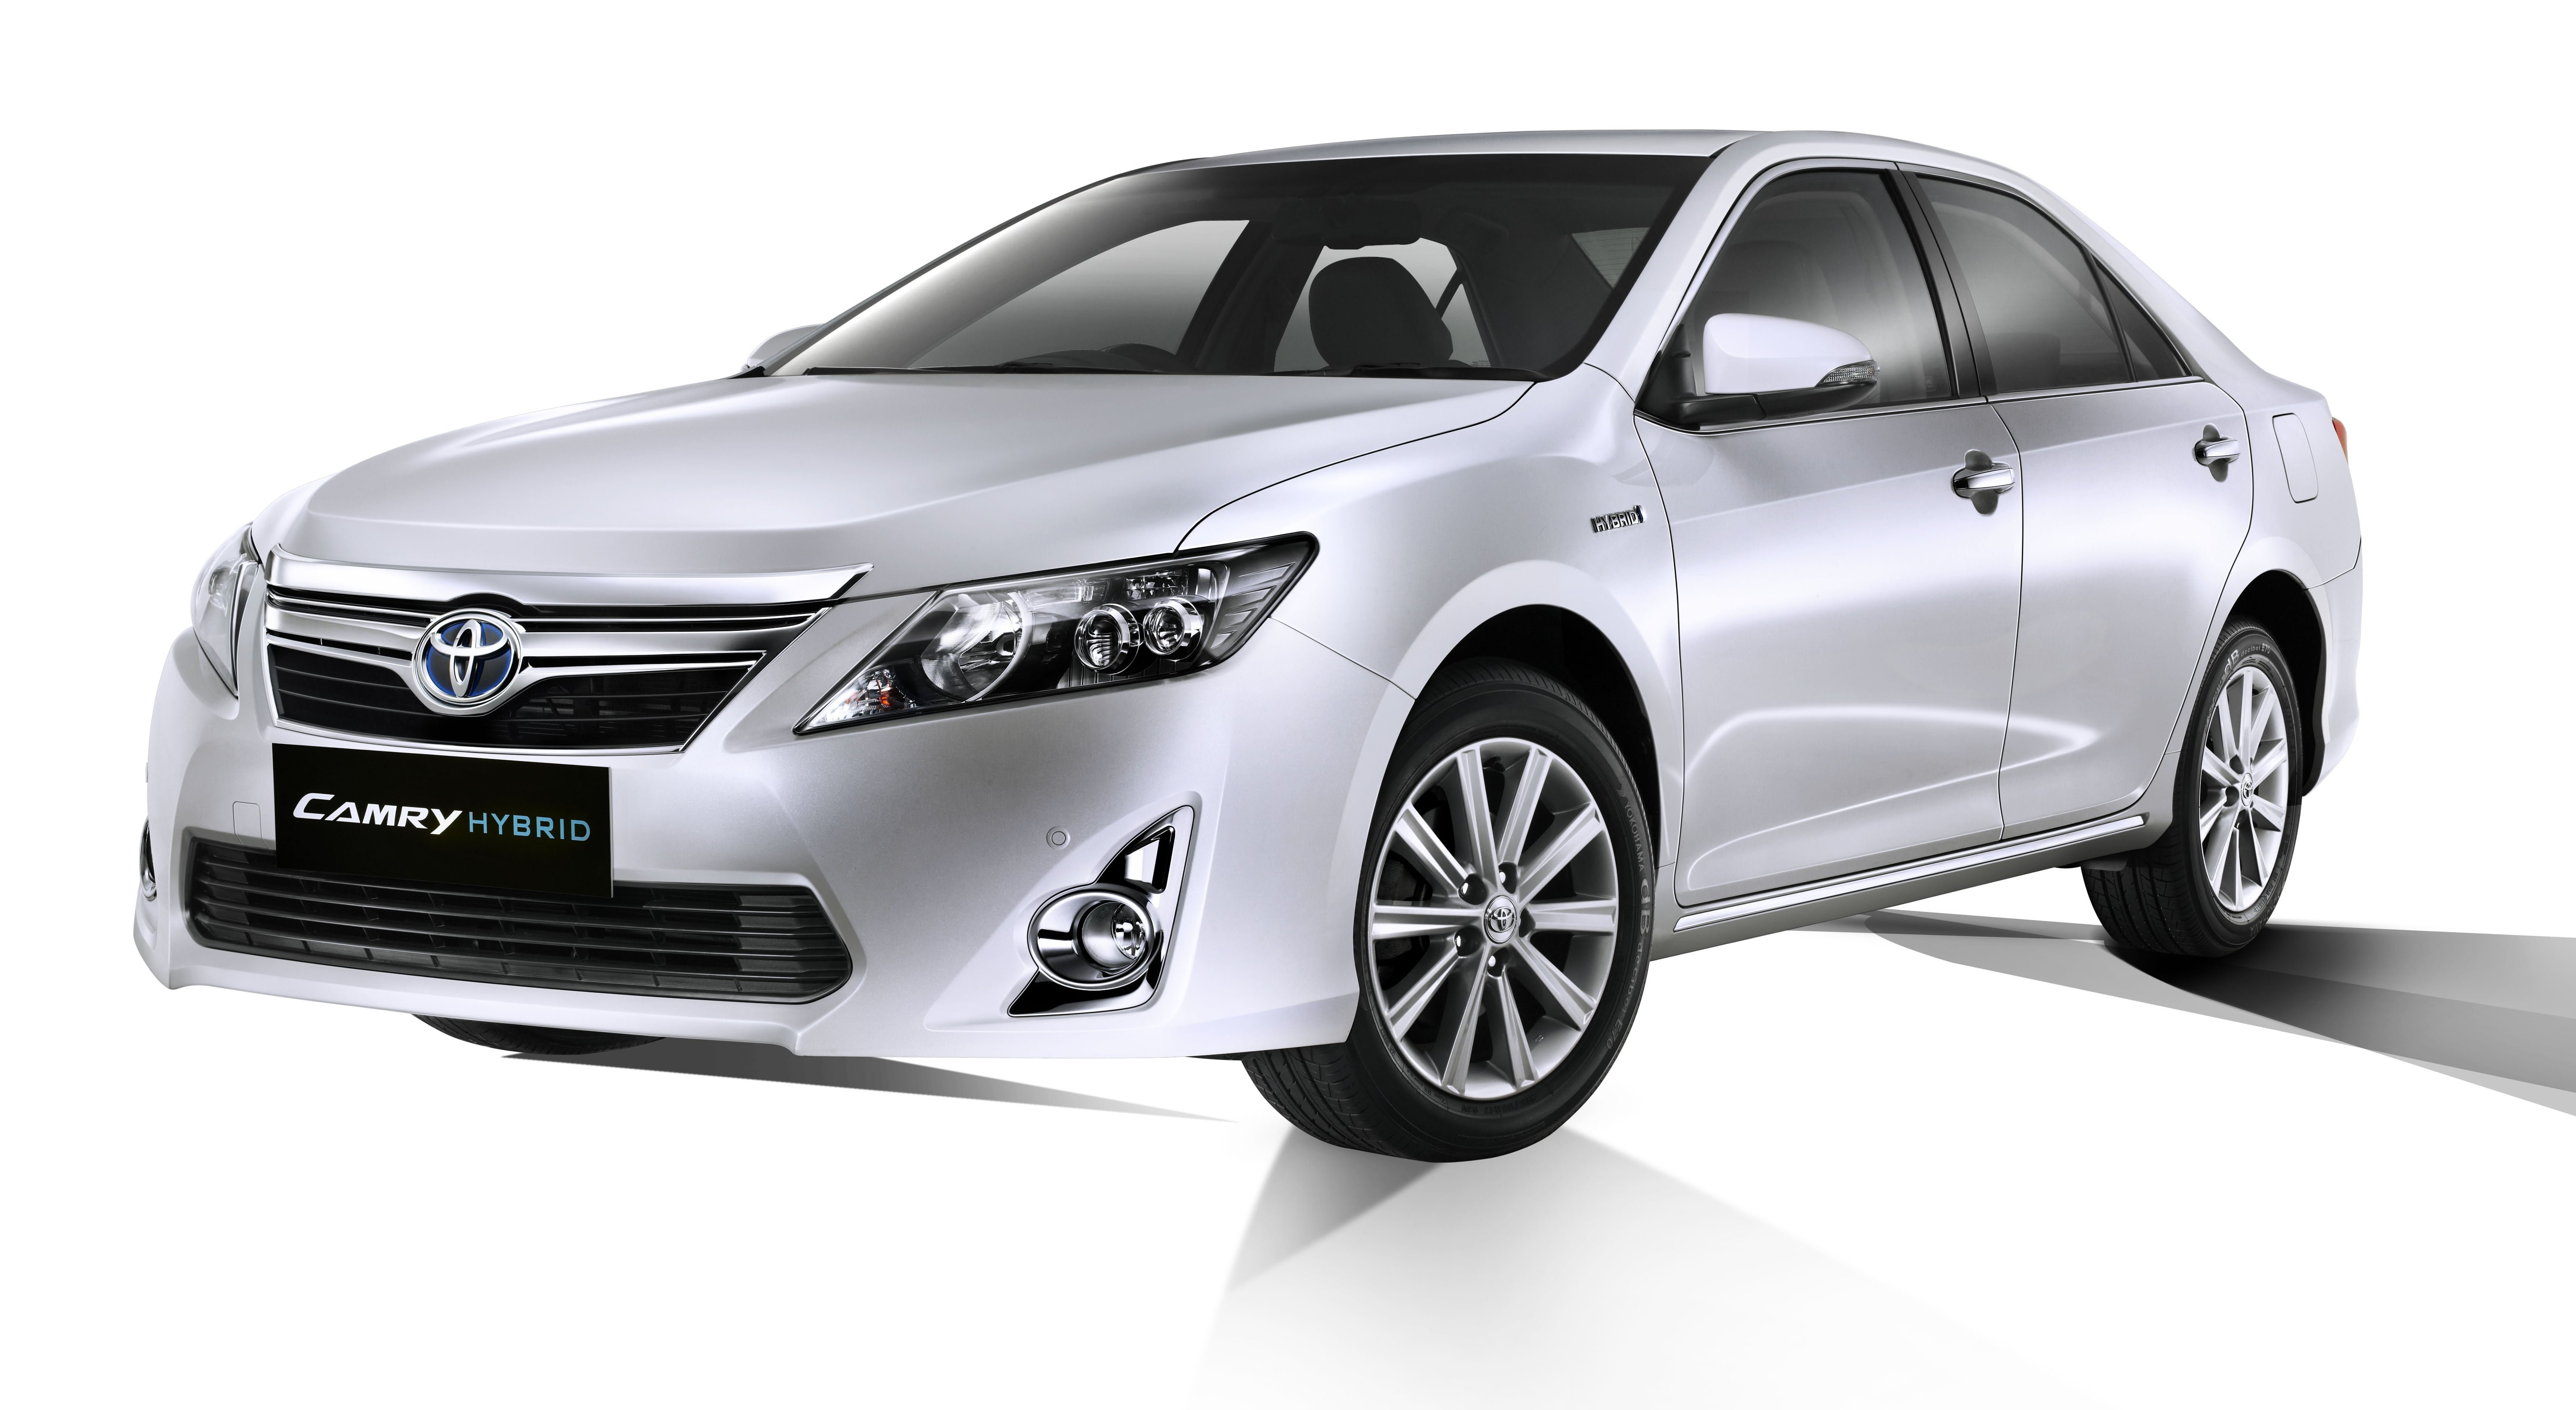 2013 Toyota Camry Hybrid Launched In India At Rs 29 75 Lakhs